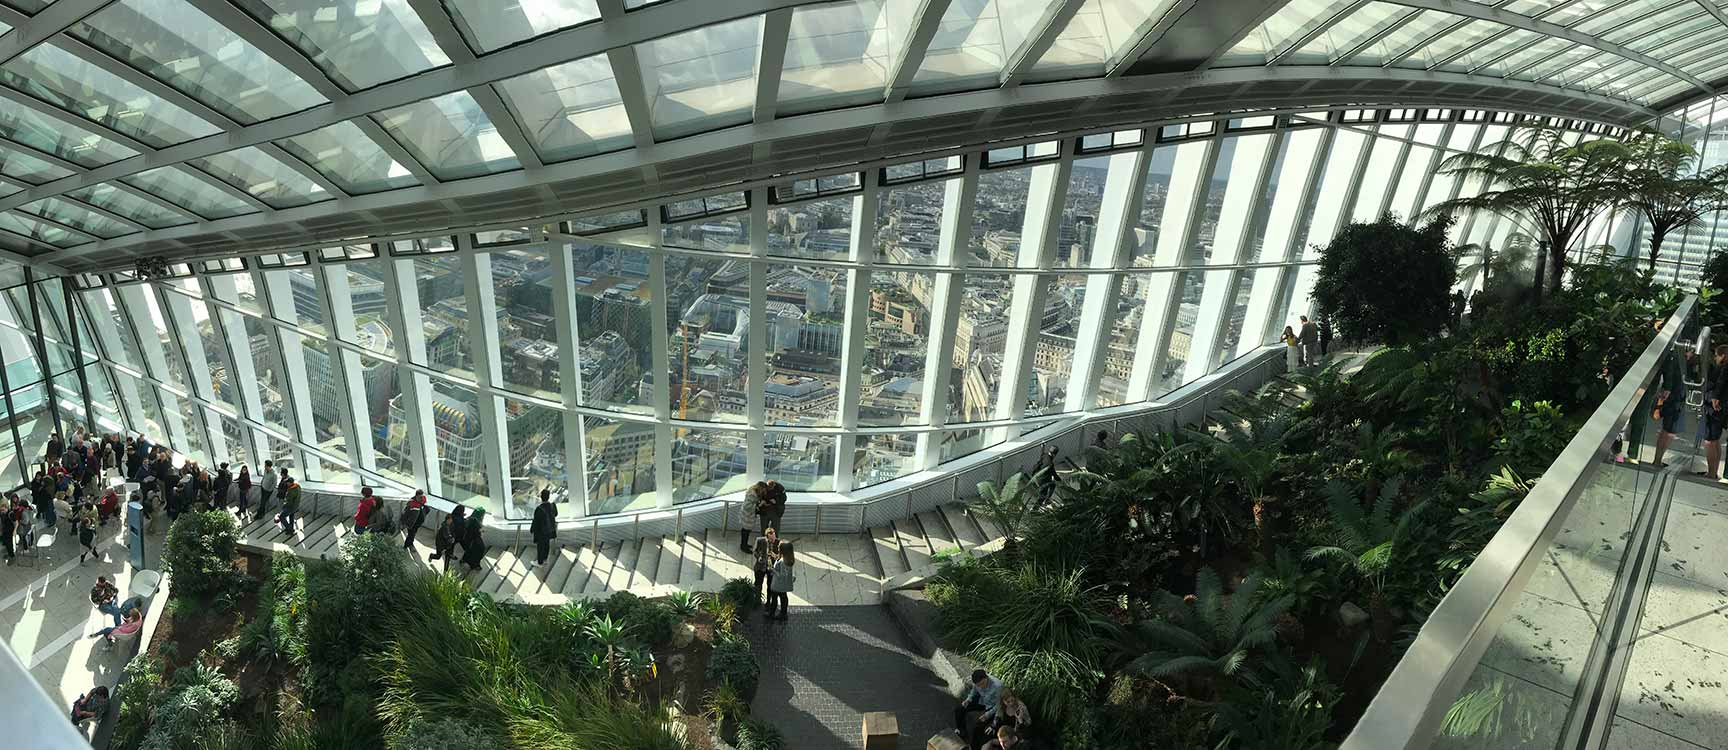 Sky Garden, Walkie Talkie Building